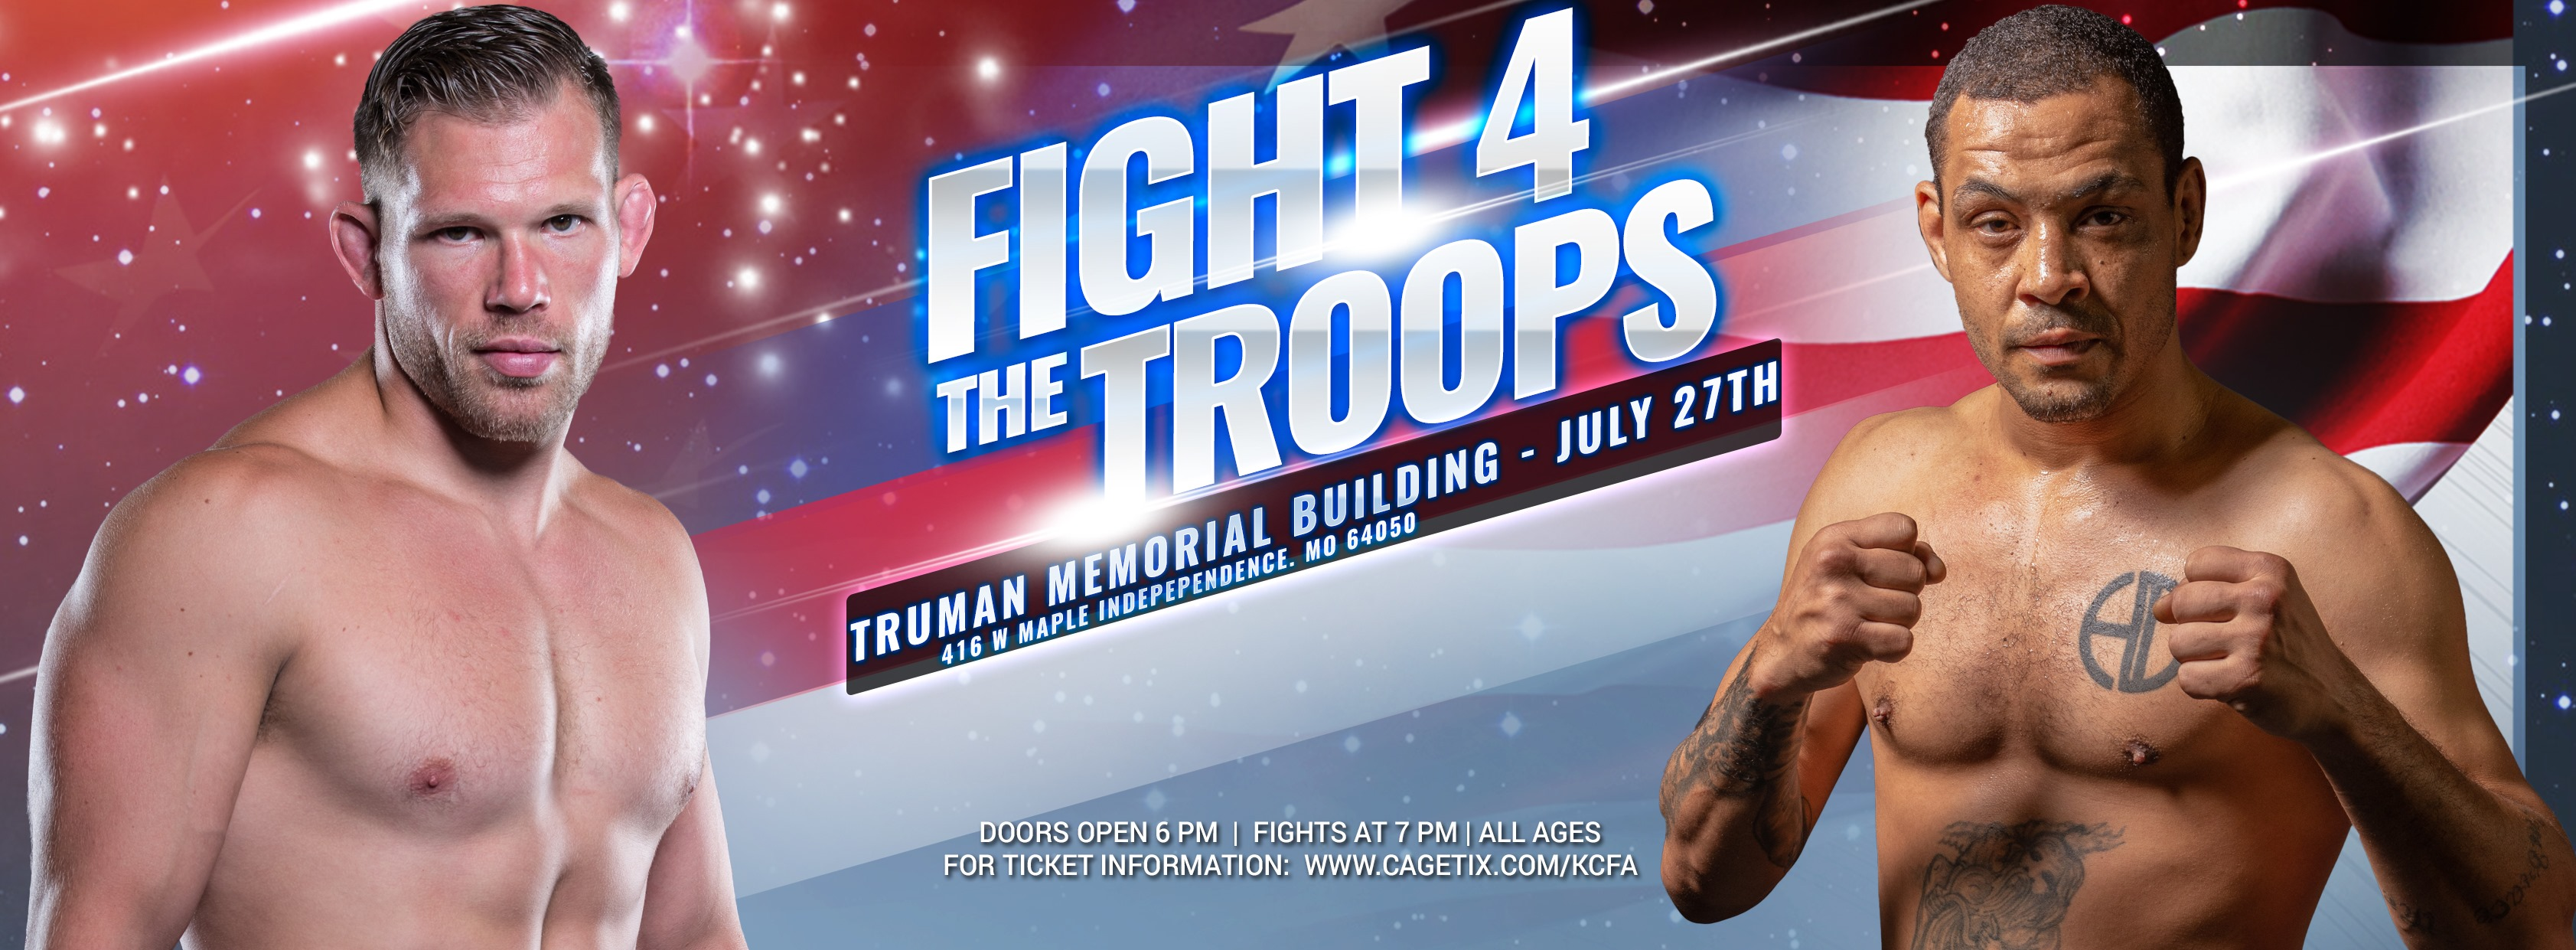 Jason Witt, Fight 4 the Troops, Kansas City Fighting Alliance